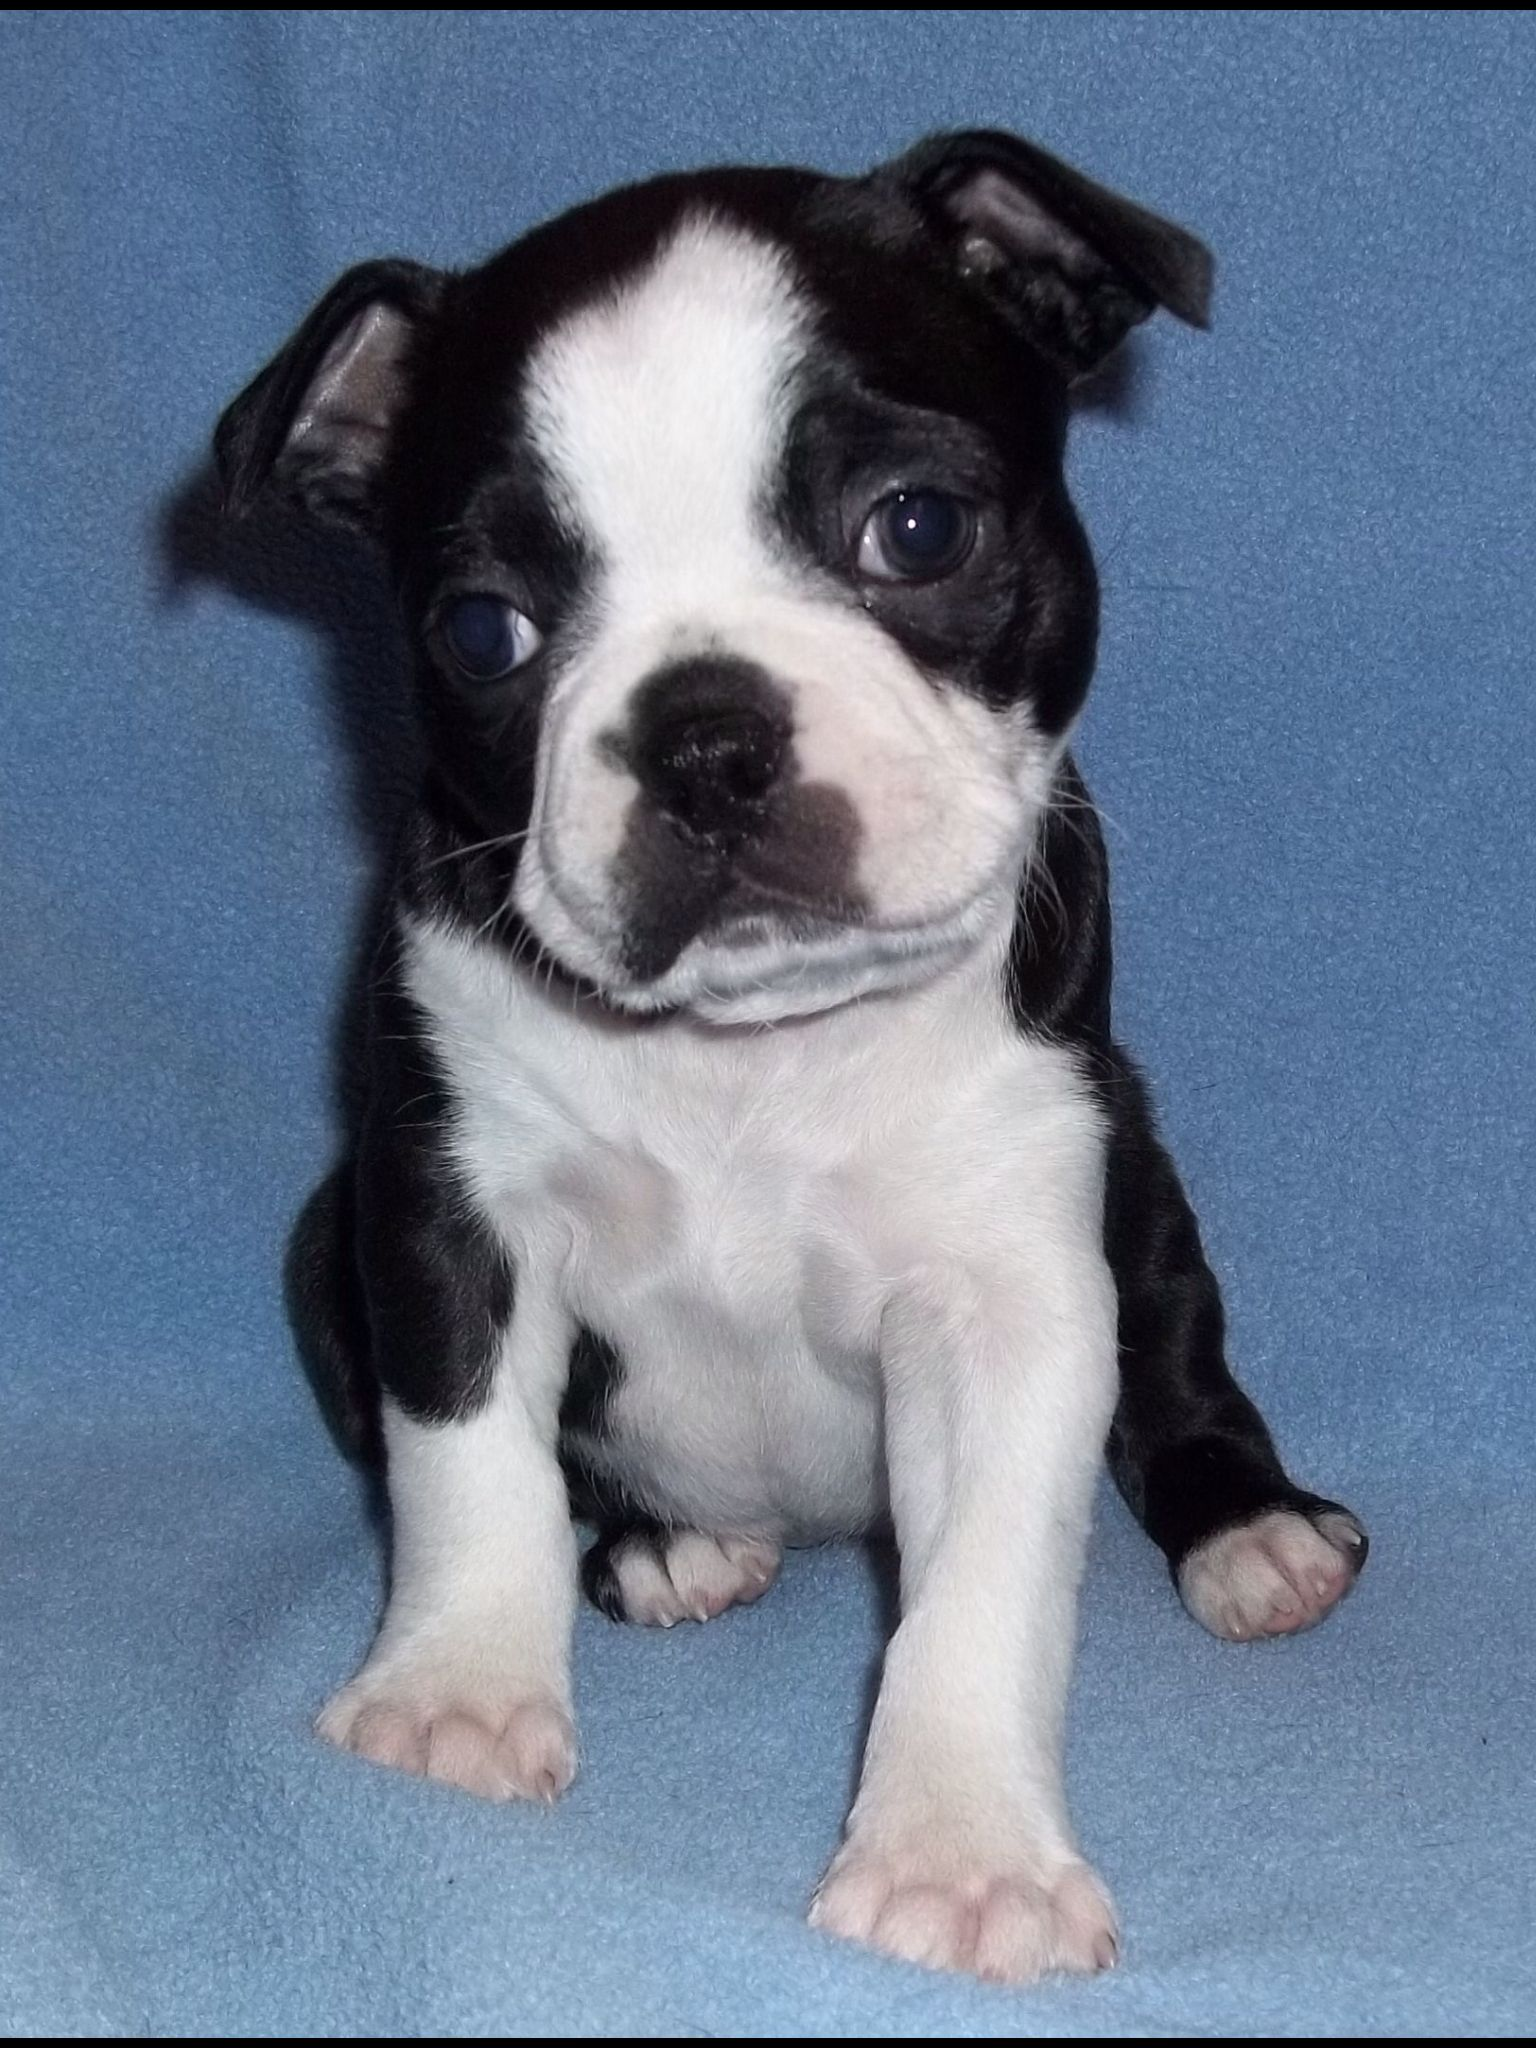 6 Week Old Boston Puppy Boston Terrier Love Cute Cats And Dogs Puppies